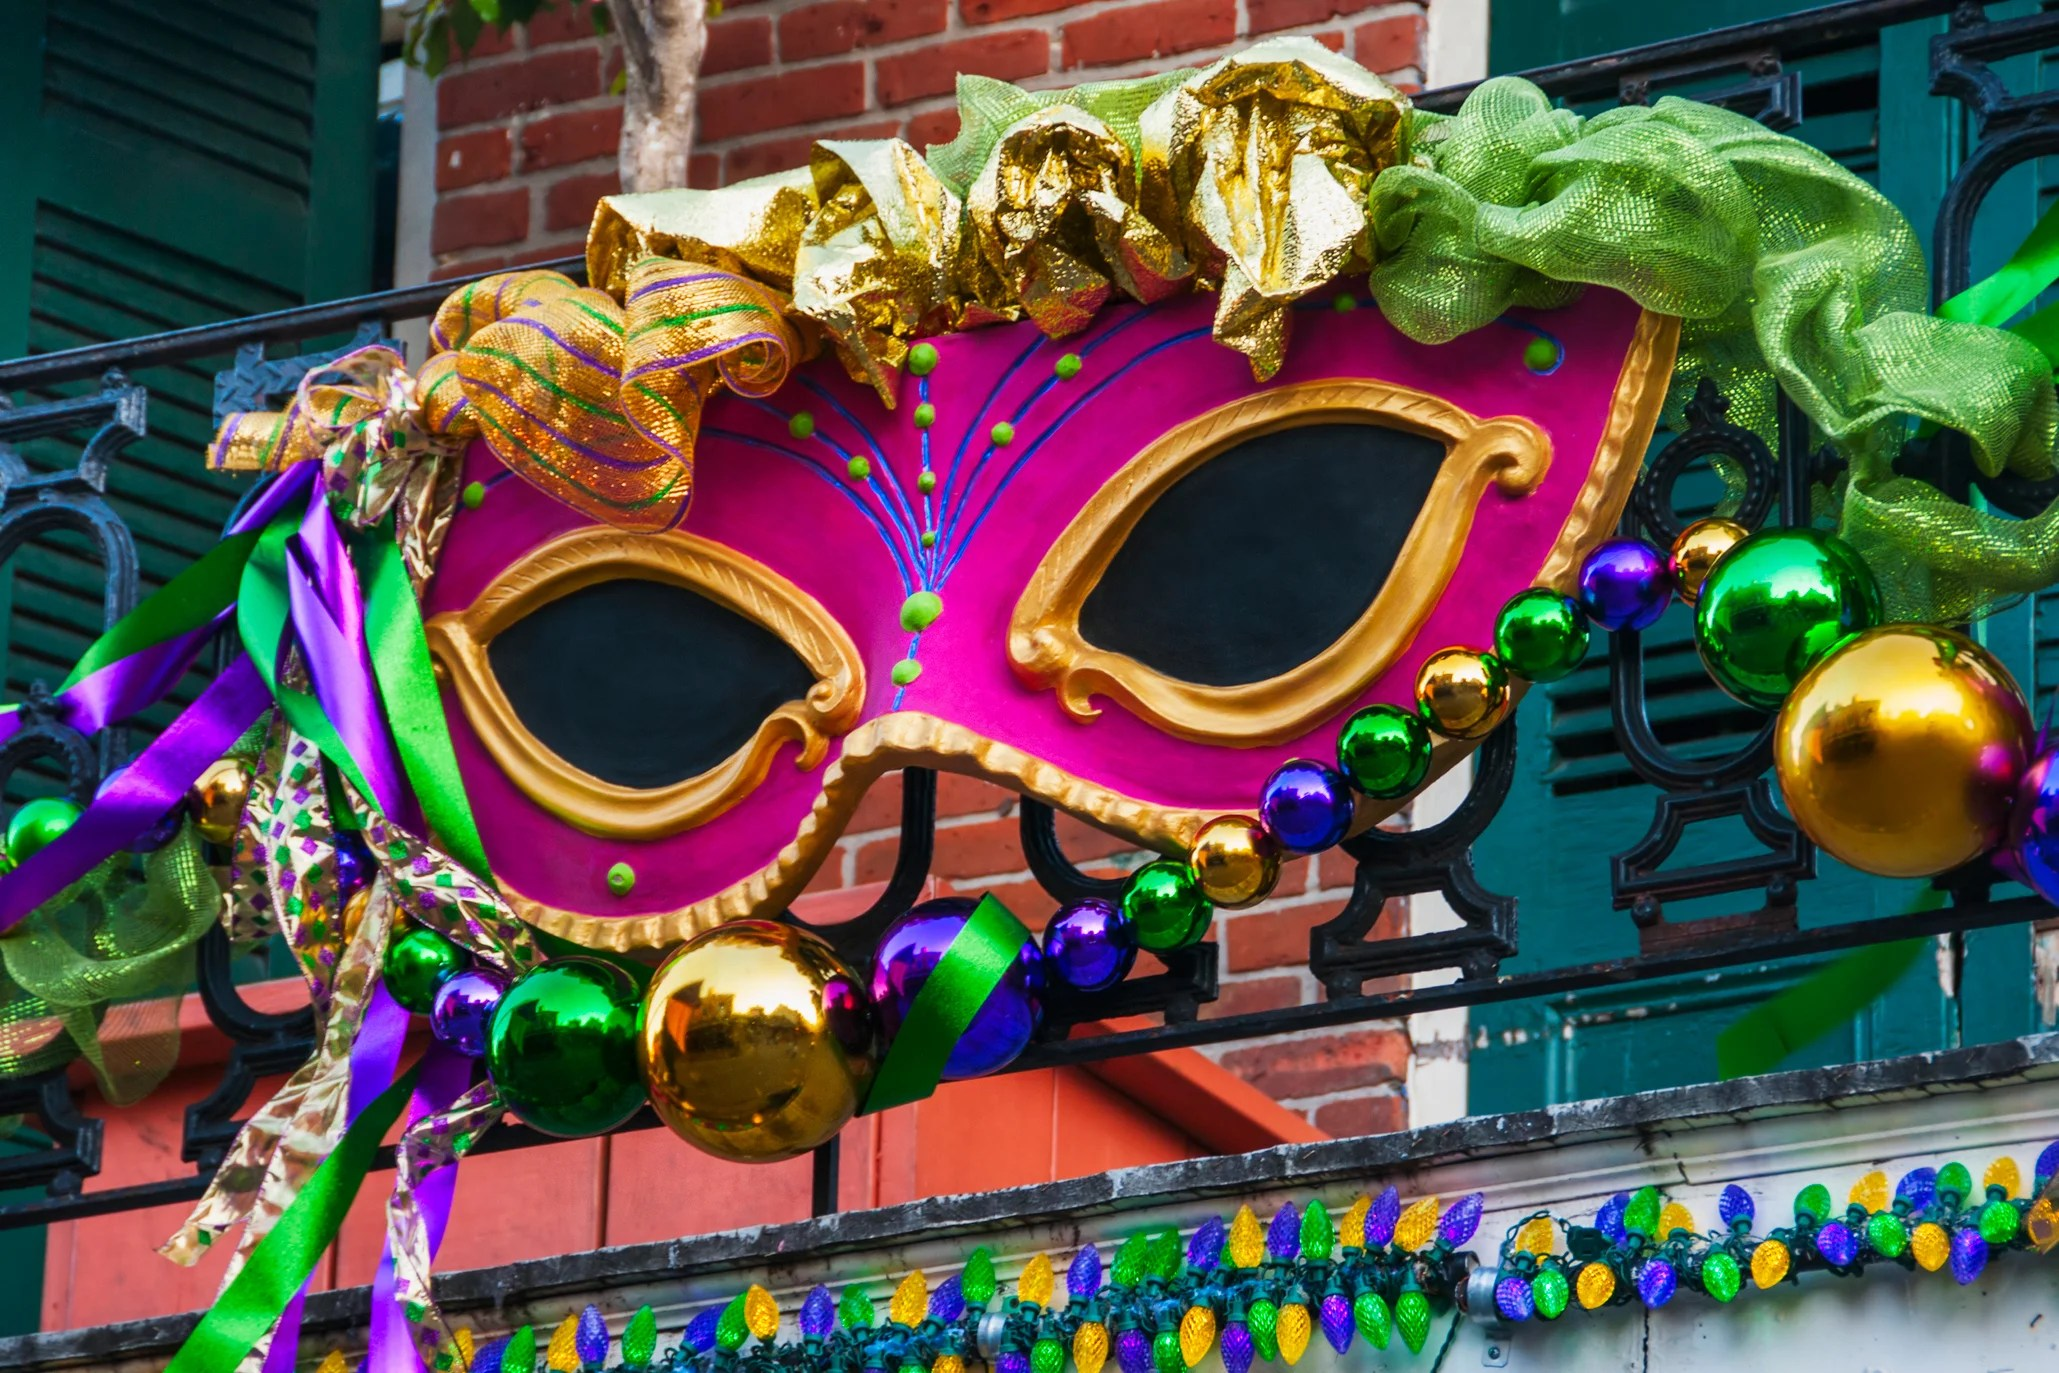 19 Things You Should Know Before Your First Mardi Gras Trip